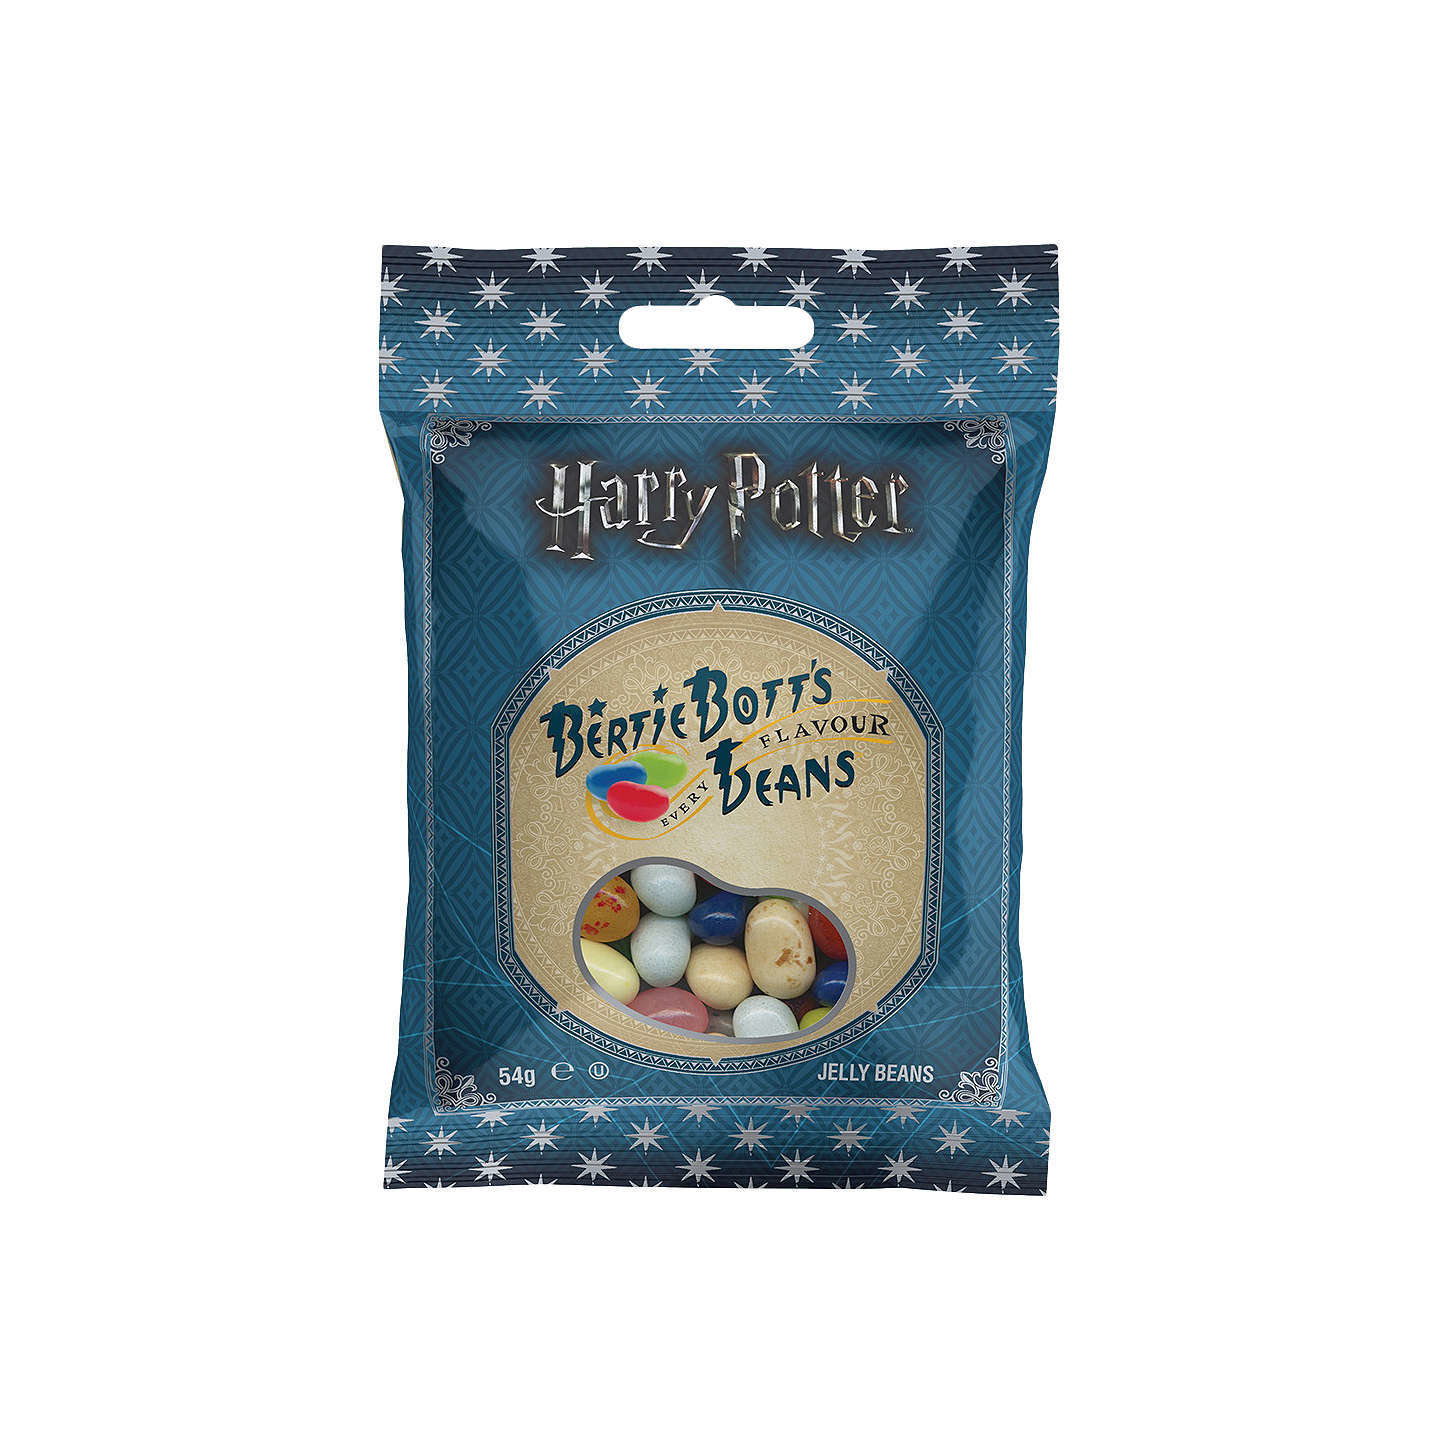 Enjoyable Harry Potter Jelly Belly Bertie Botts Beans Bag 54G Andrewgaddart Wooden Chair Designs For Living Room Andrewgaddartcom